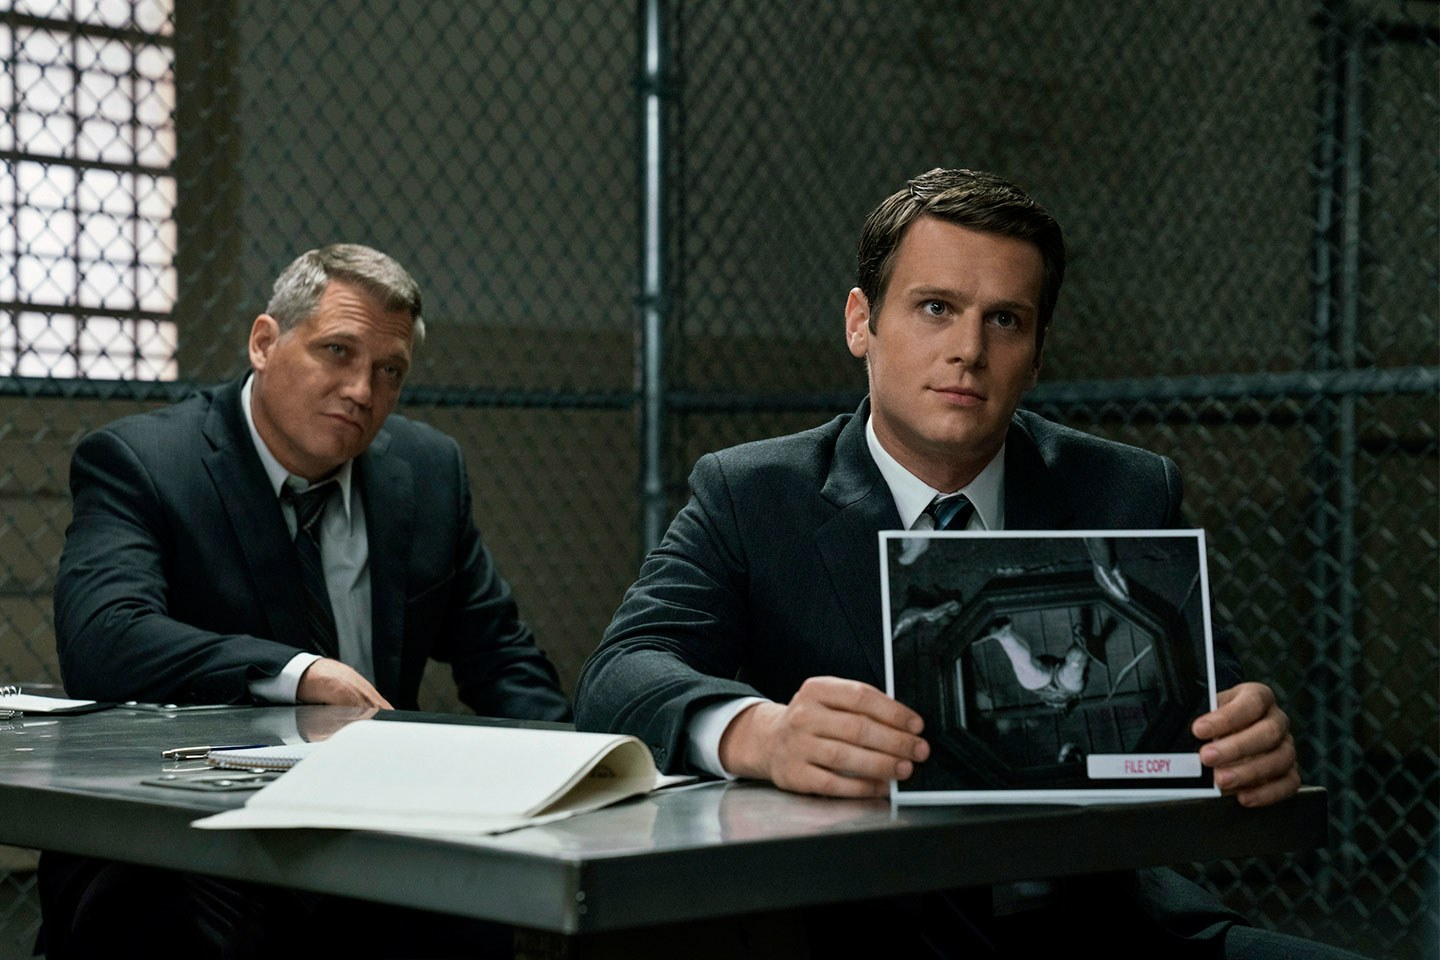 mindhunters one of the smartest most mesmerizing shows i ve seen in a while avoiding the usual cliches of serial killers by going back to the time when